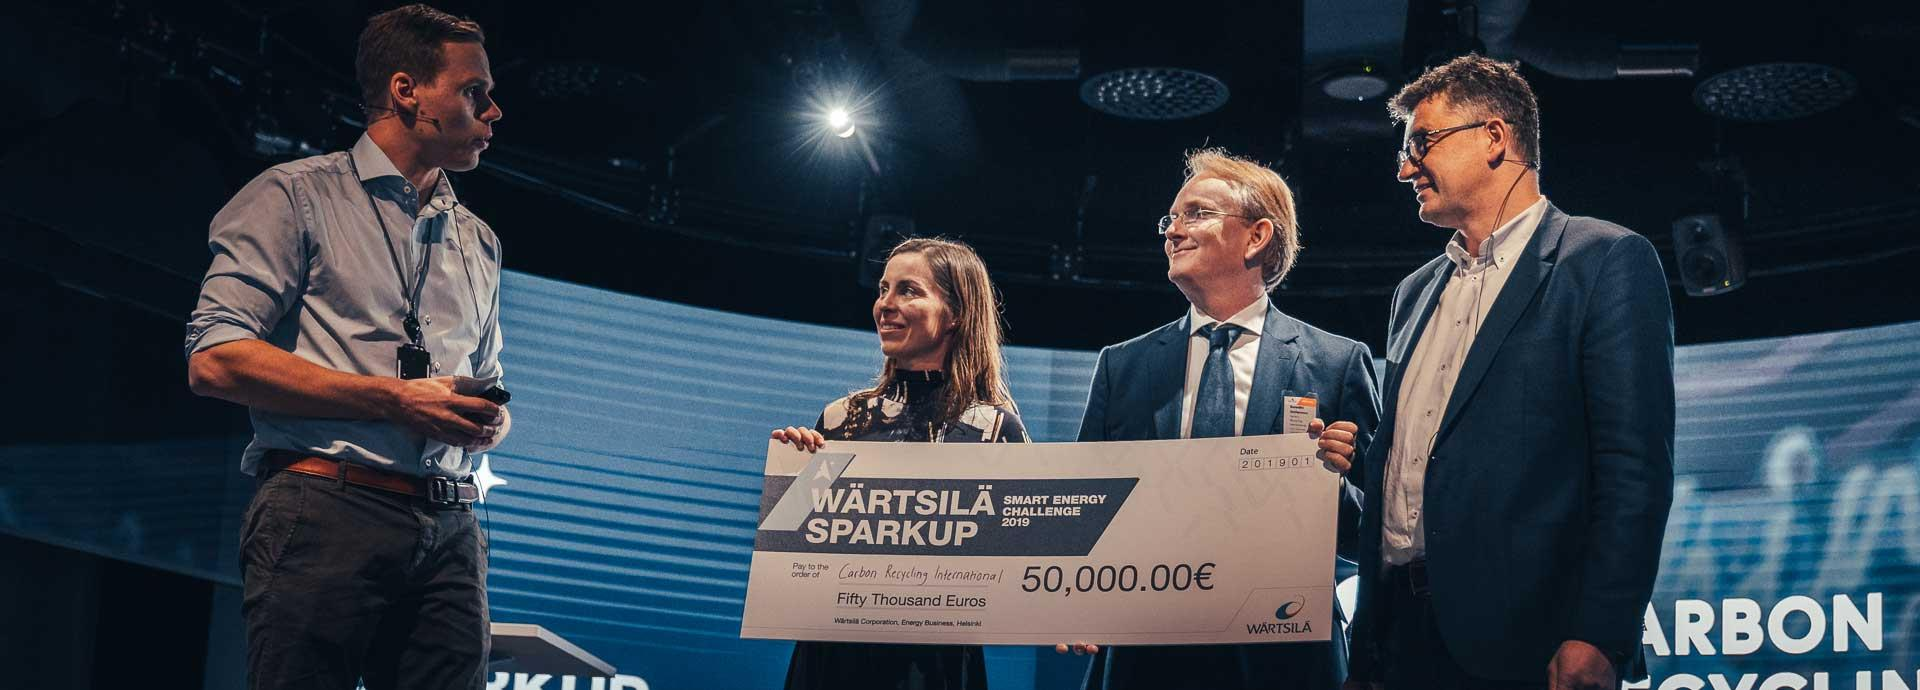 SparkUp Challenge winner, Carbon Recycling International, wants to make an impact with Power-to-X